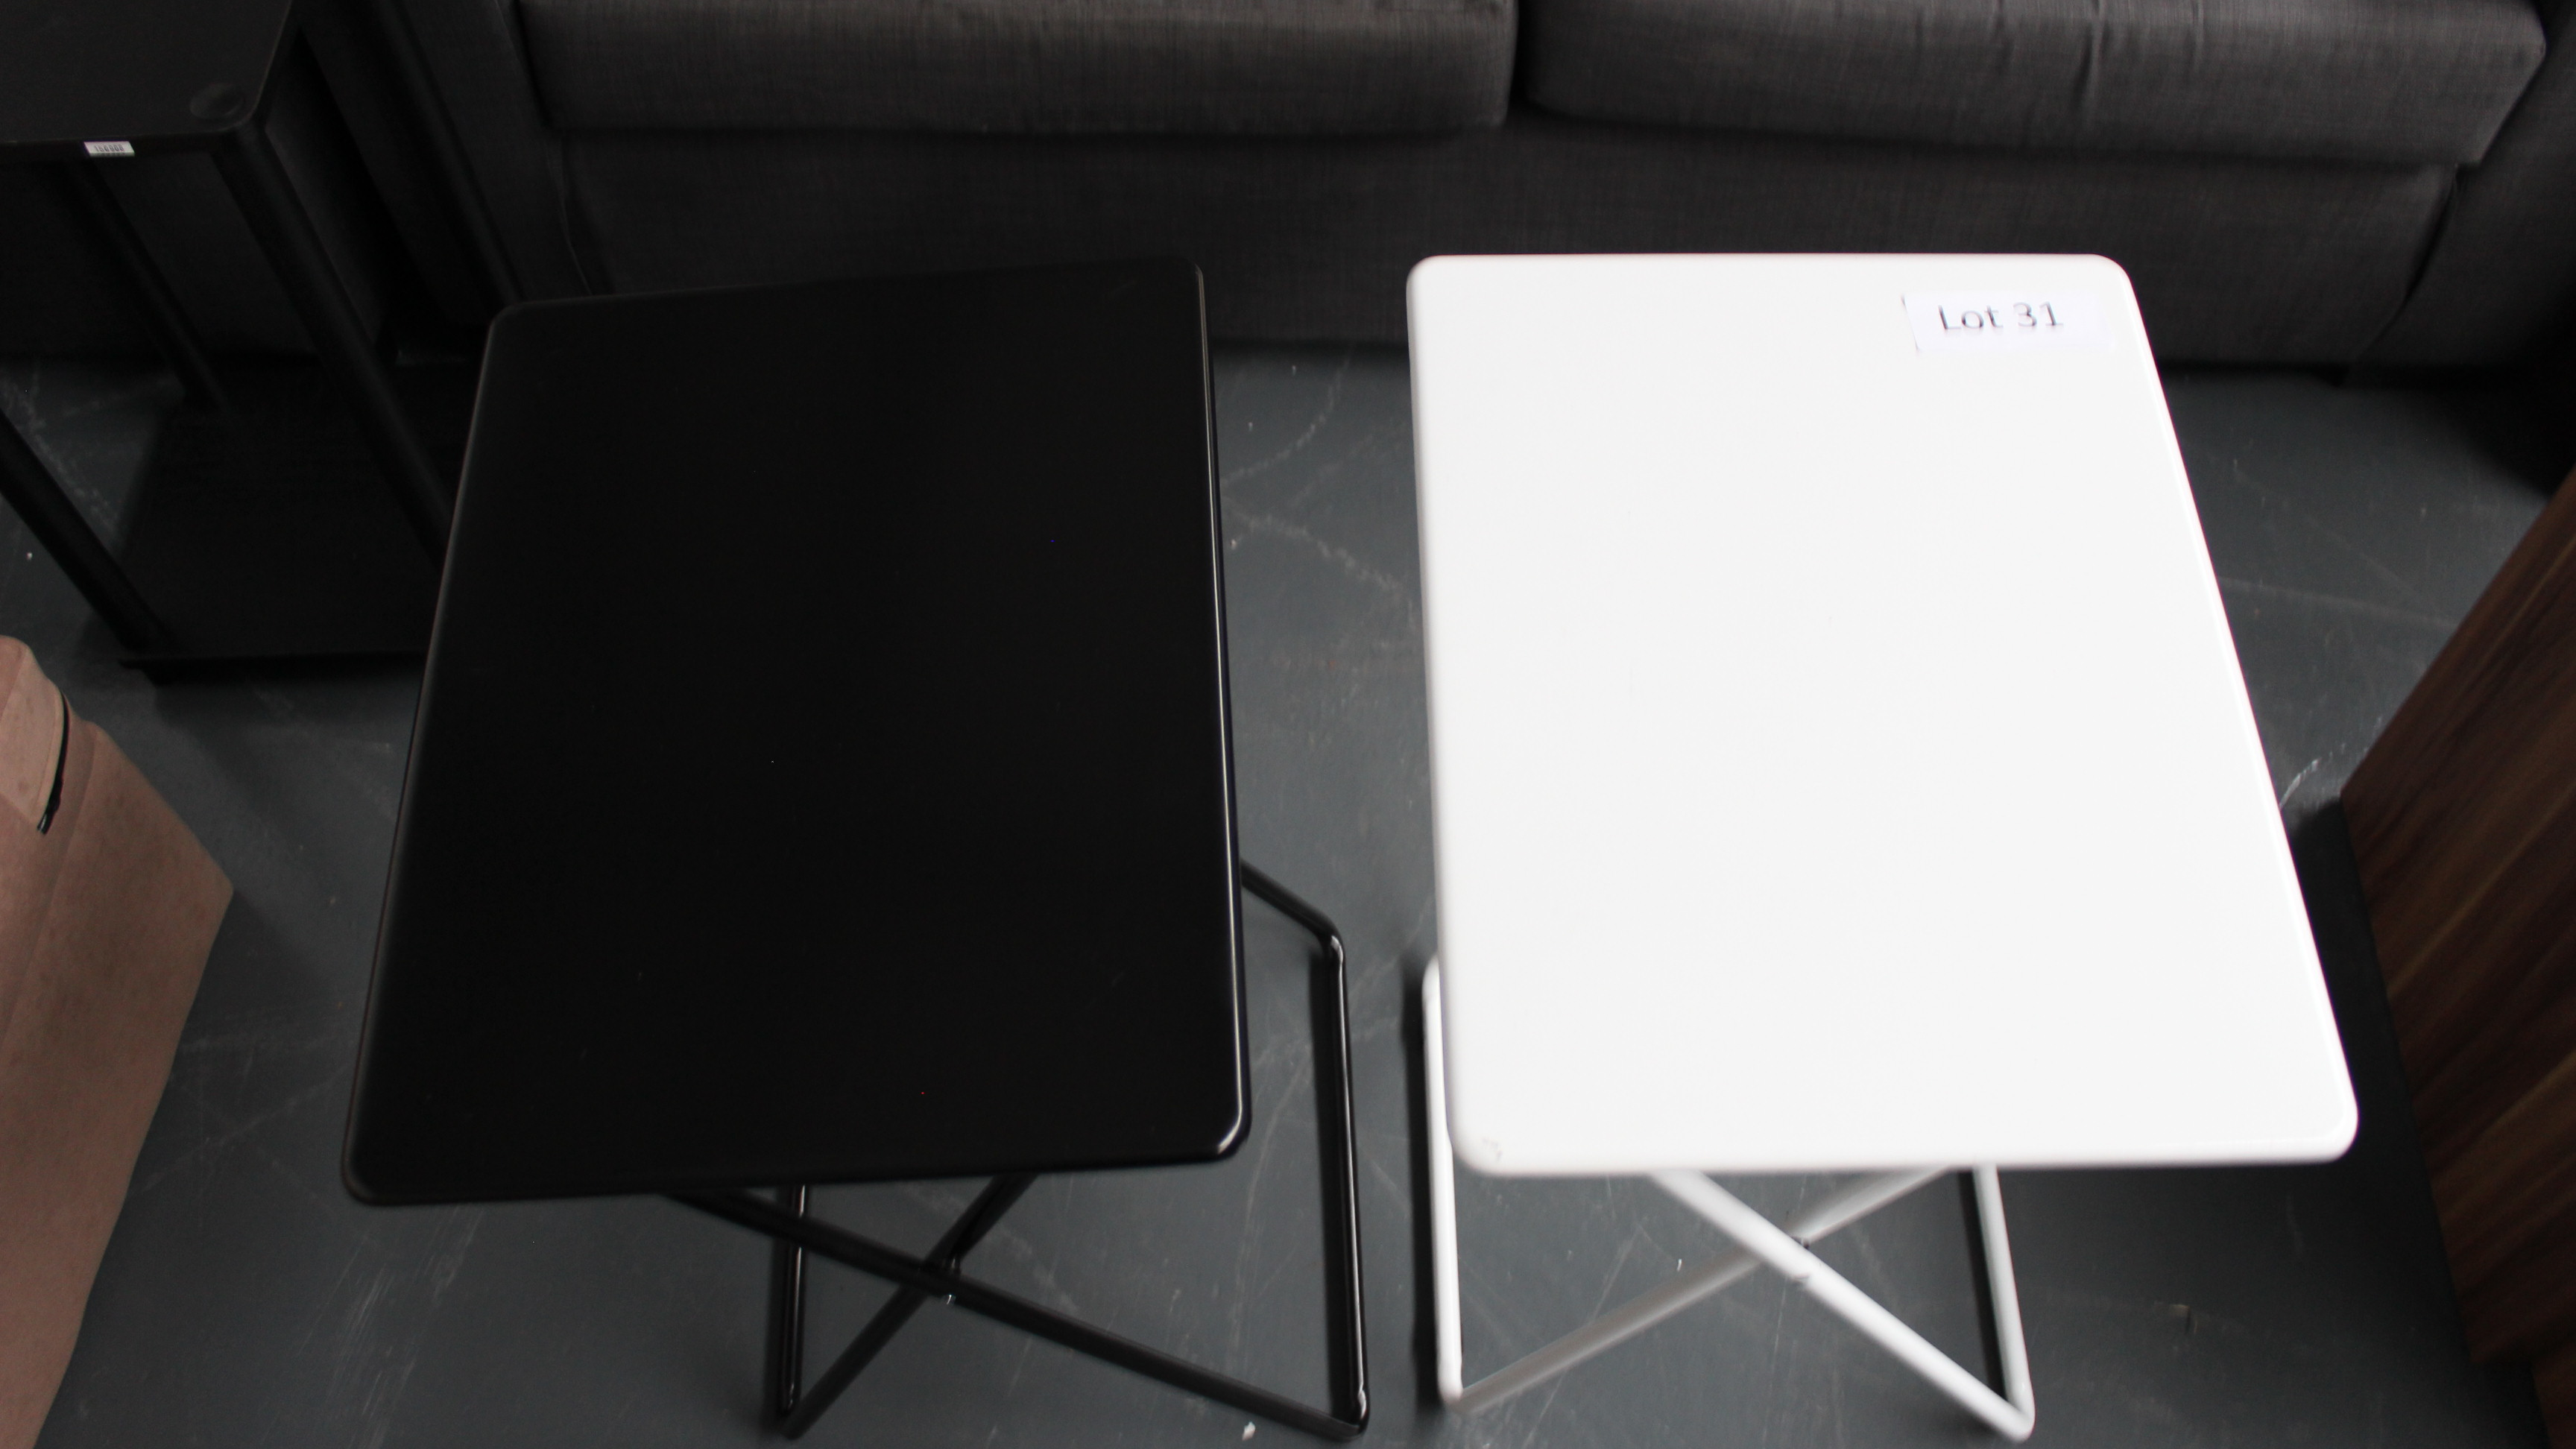 Lot 31 - Two Occasional Tables 1 Black 1 White. Customer Returns